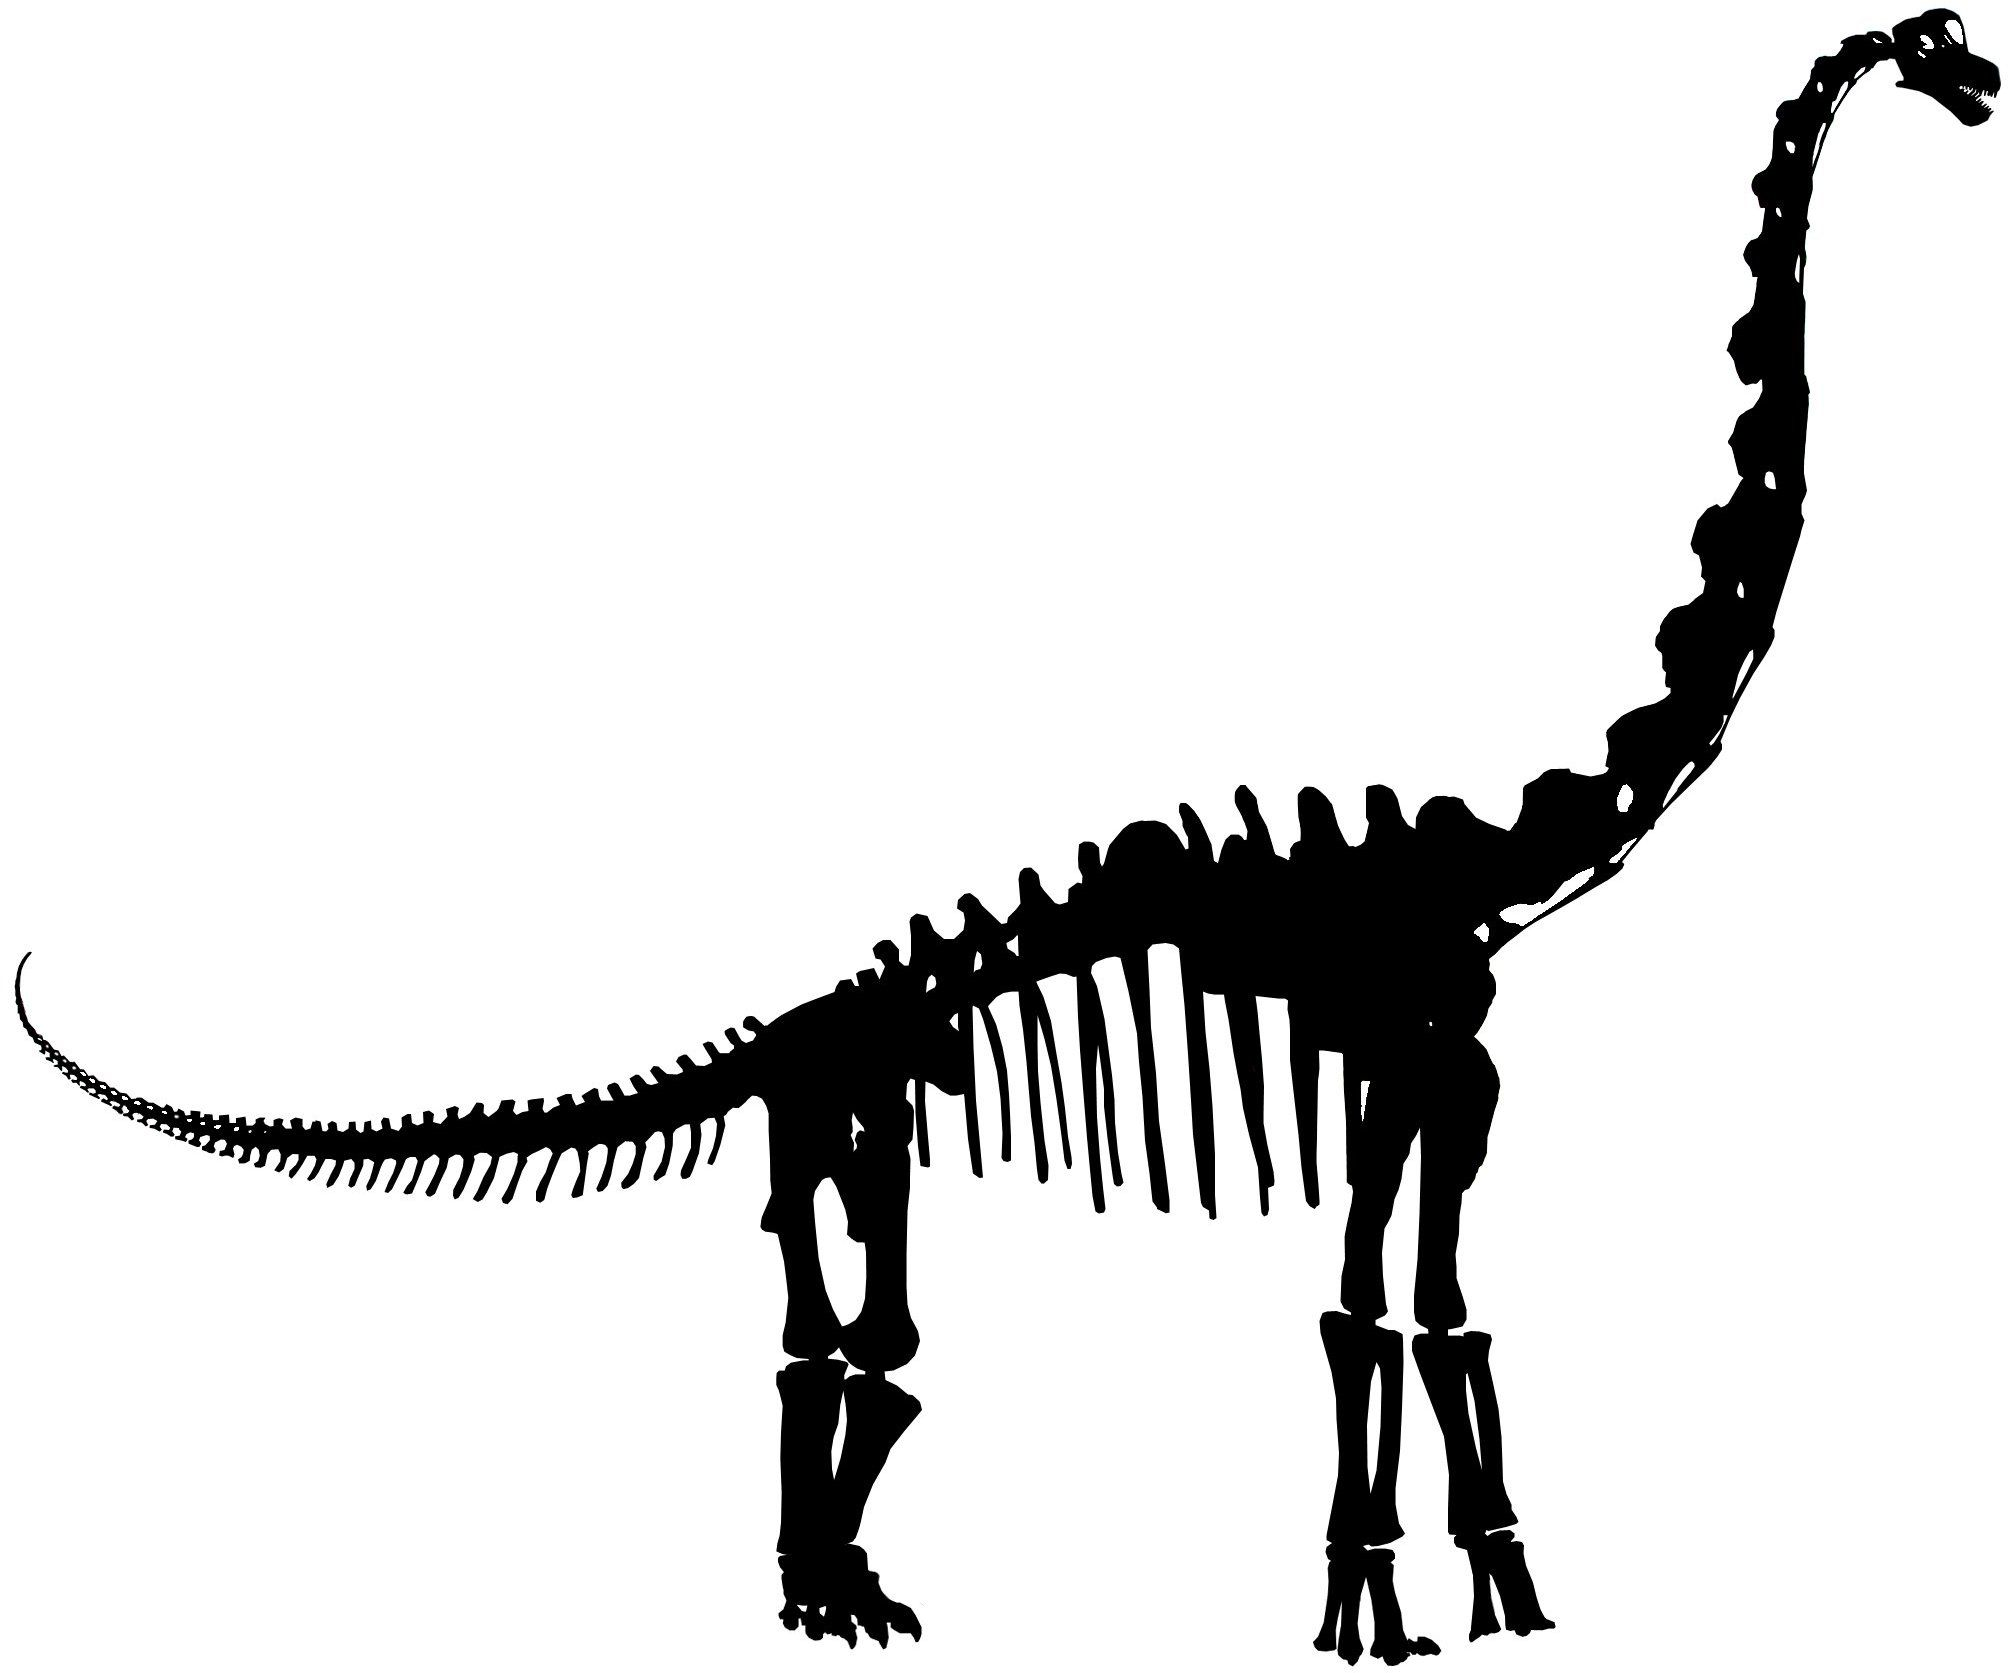 Dinosaur skeleton silhouette google search quilt specific dinosaur skeleton silhouette google search fandeluxe Ebook collections